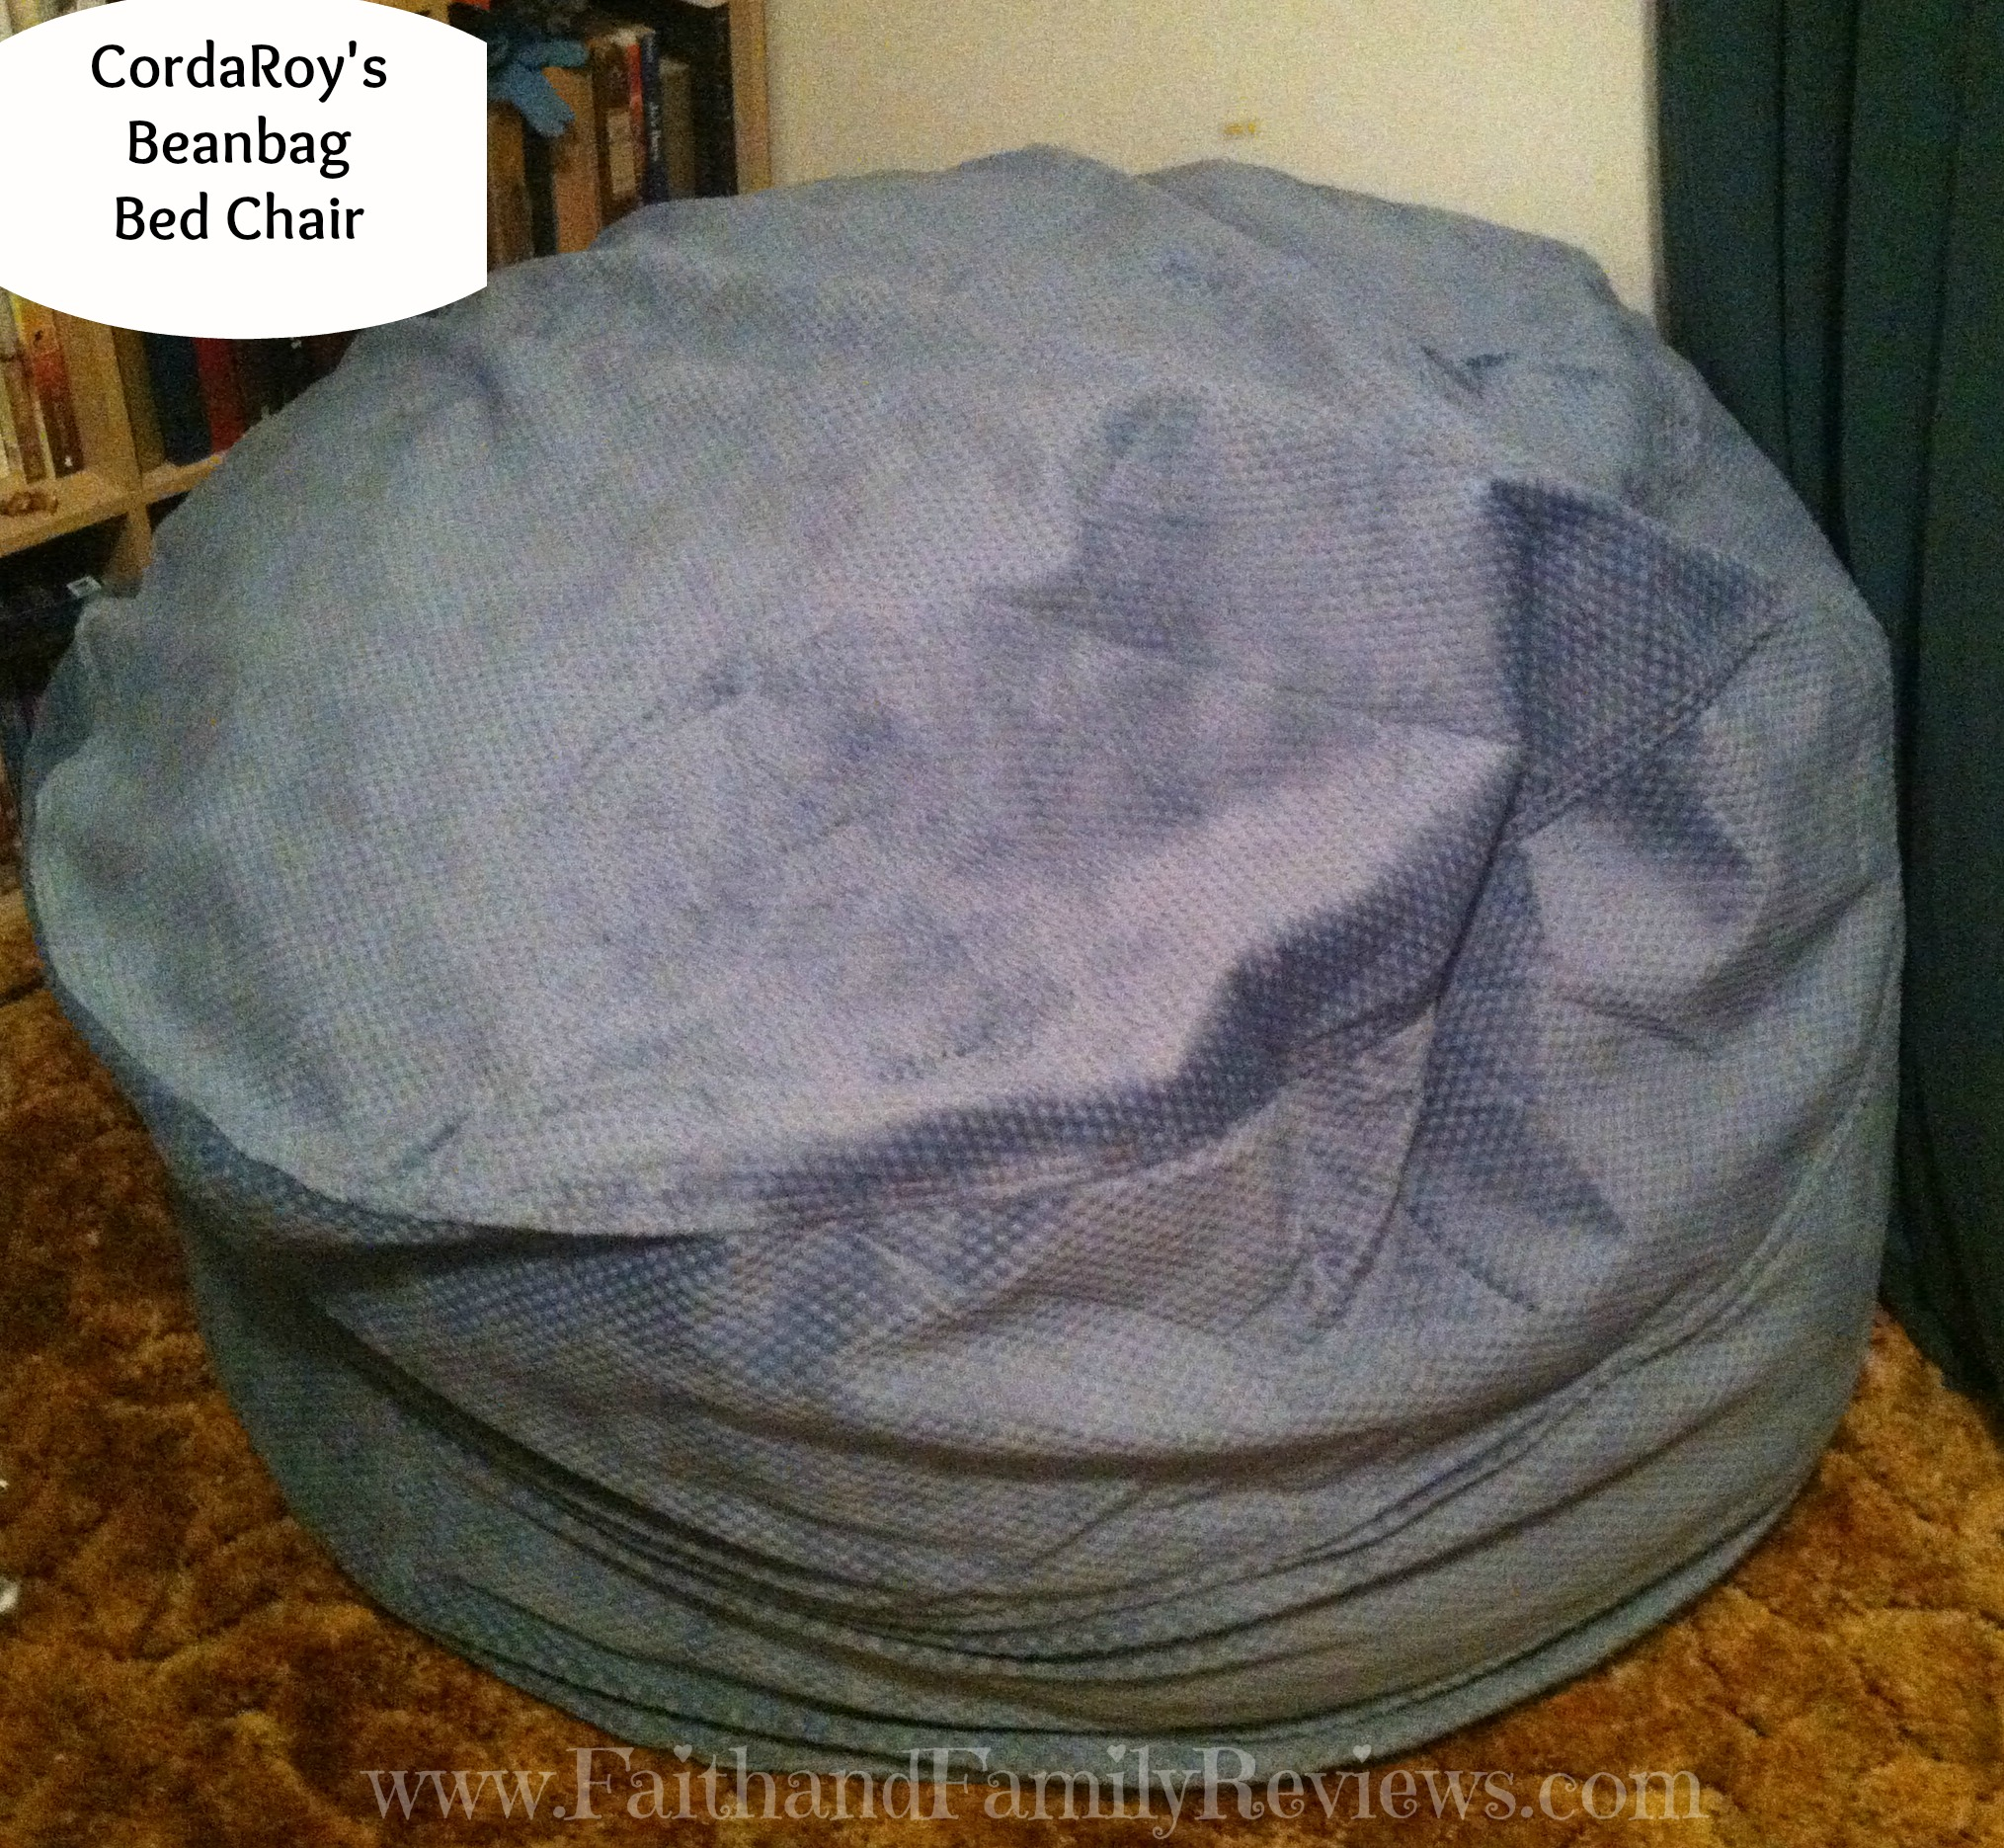 CordaRoy's Beanbag Bed Chair_